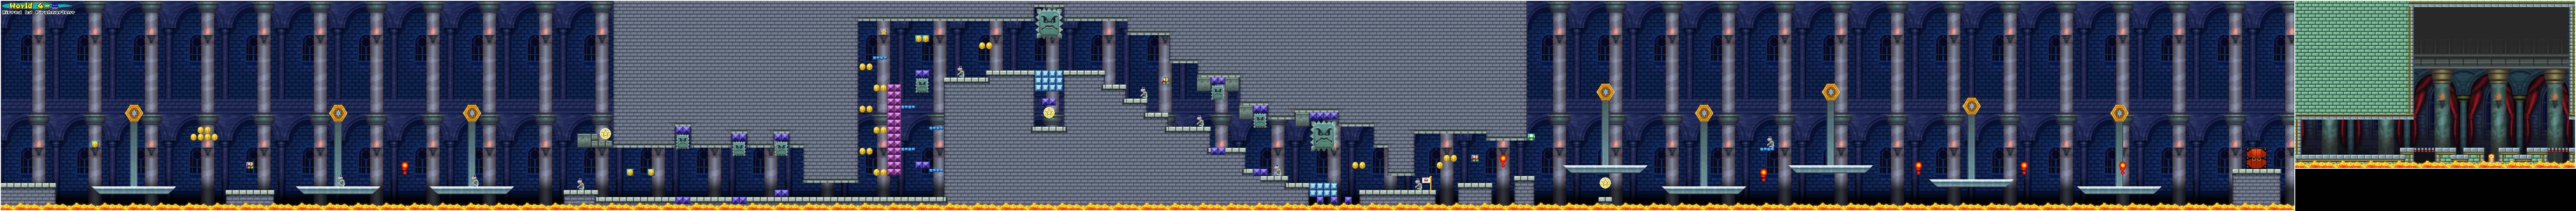 NewSuperMarioBros-World4-Castle.png